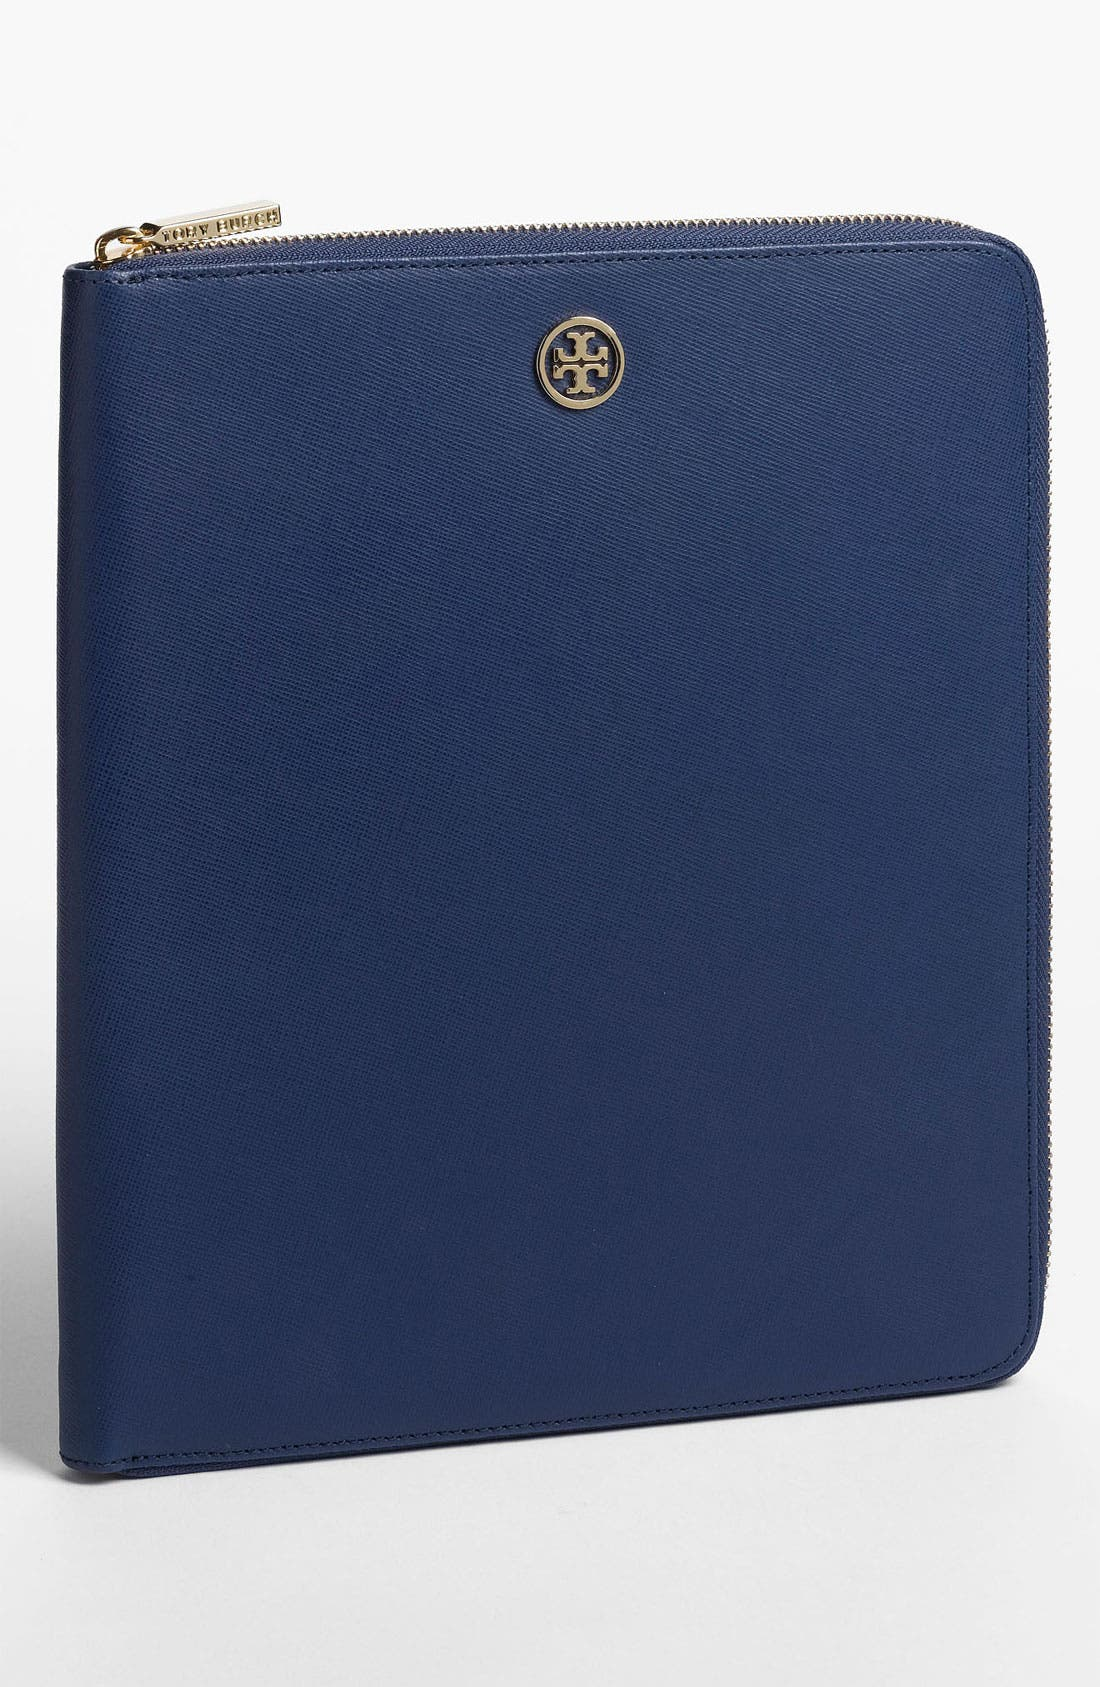 Alternate Image 1 Selected - Tory Burch Saffiano Leather iPad Case